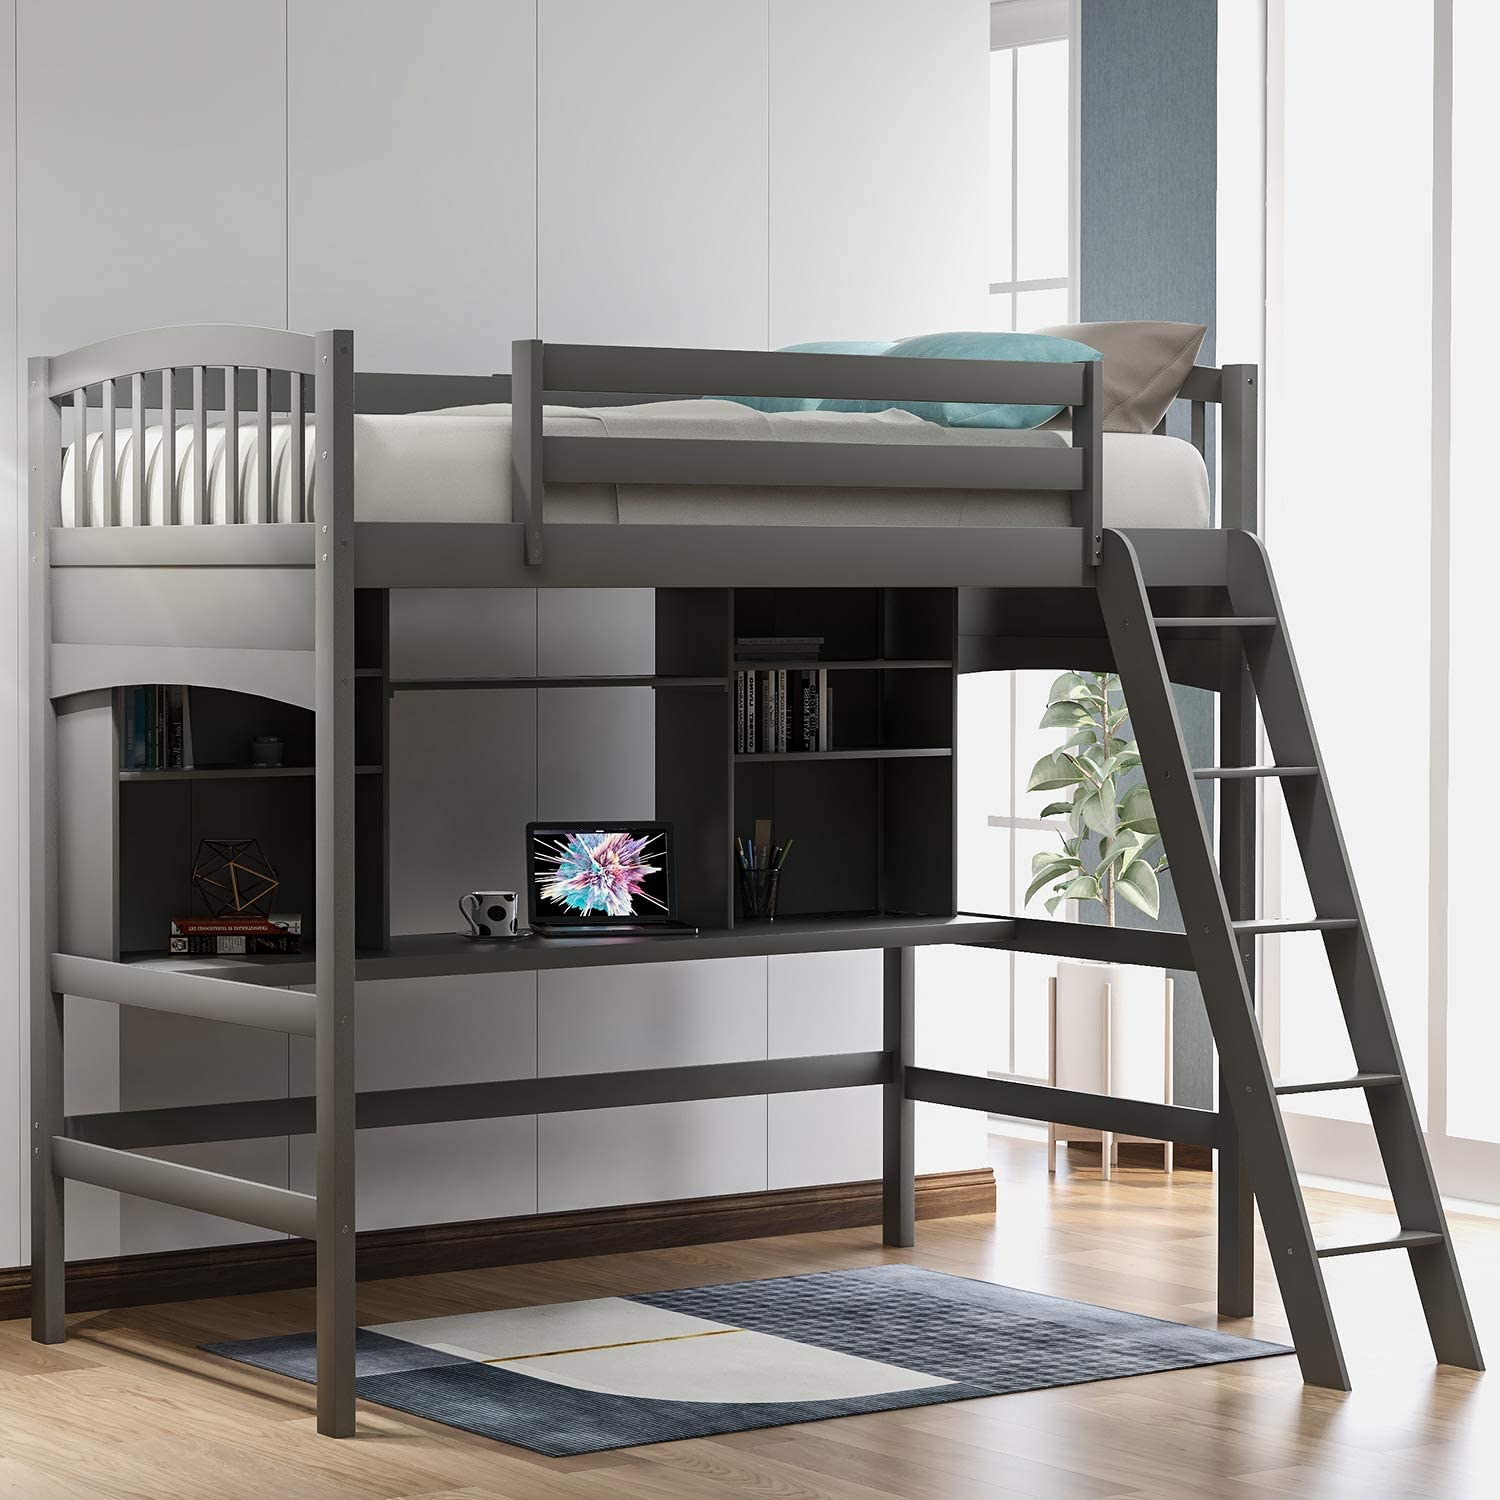 Harper & Bright Designs Twin Loft Beds with Desk and Shelves, Wood Bunk Beds with Desk, No Box Spring Needed (Grey, Twin)